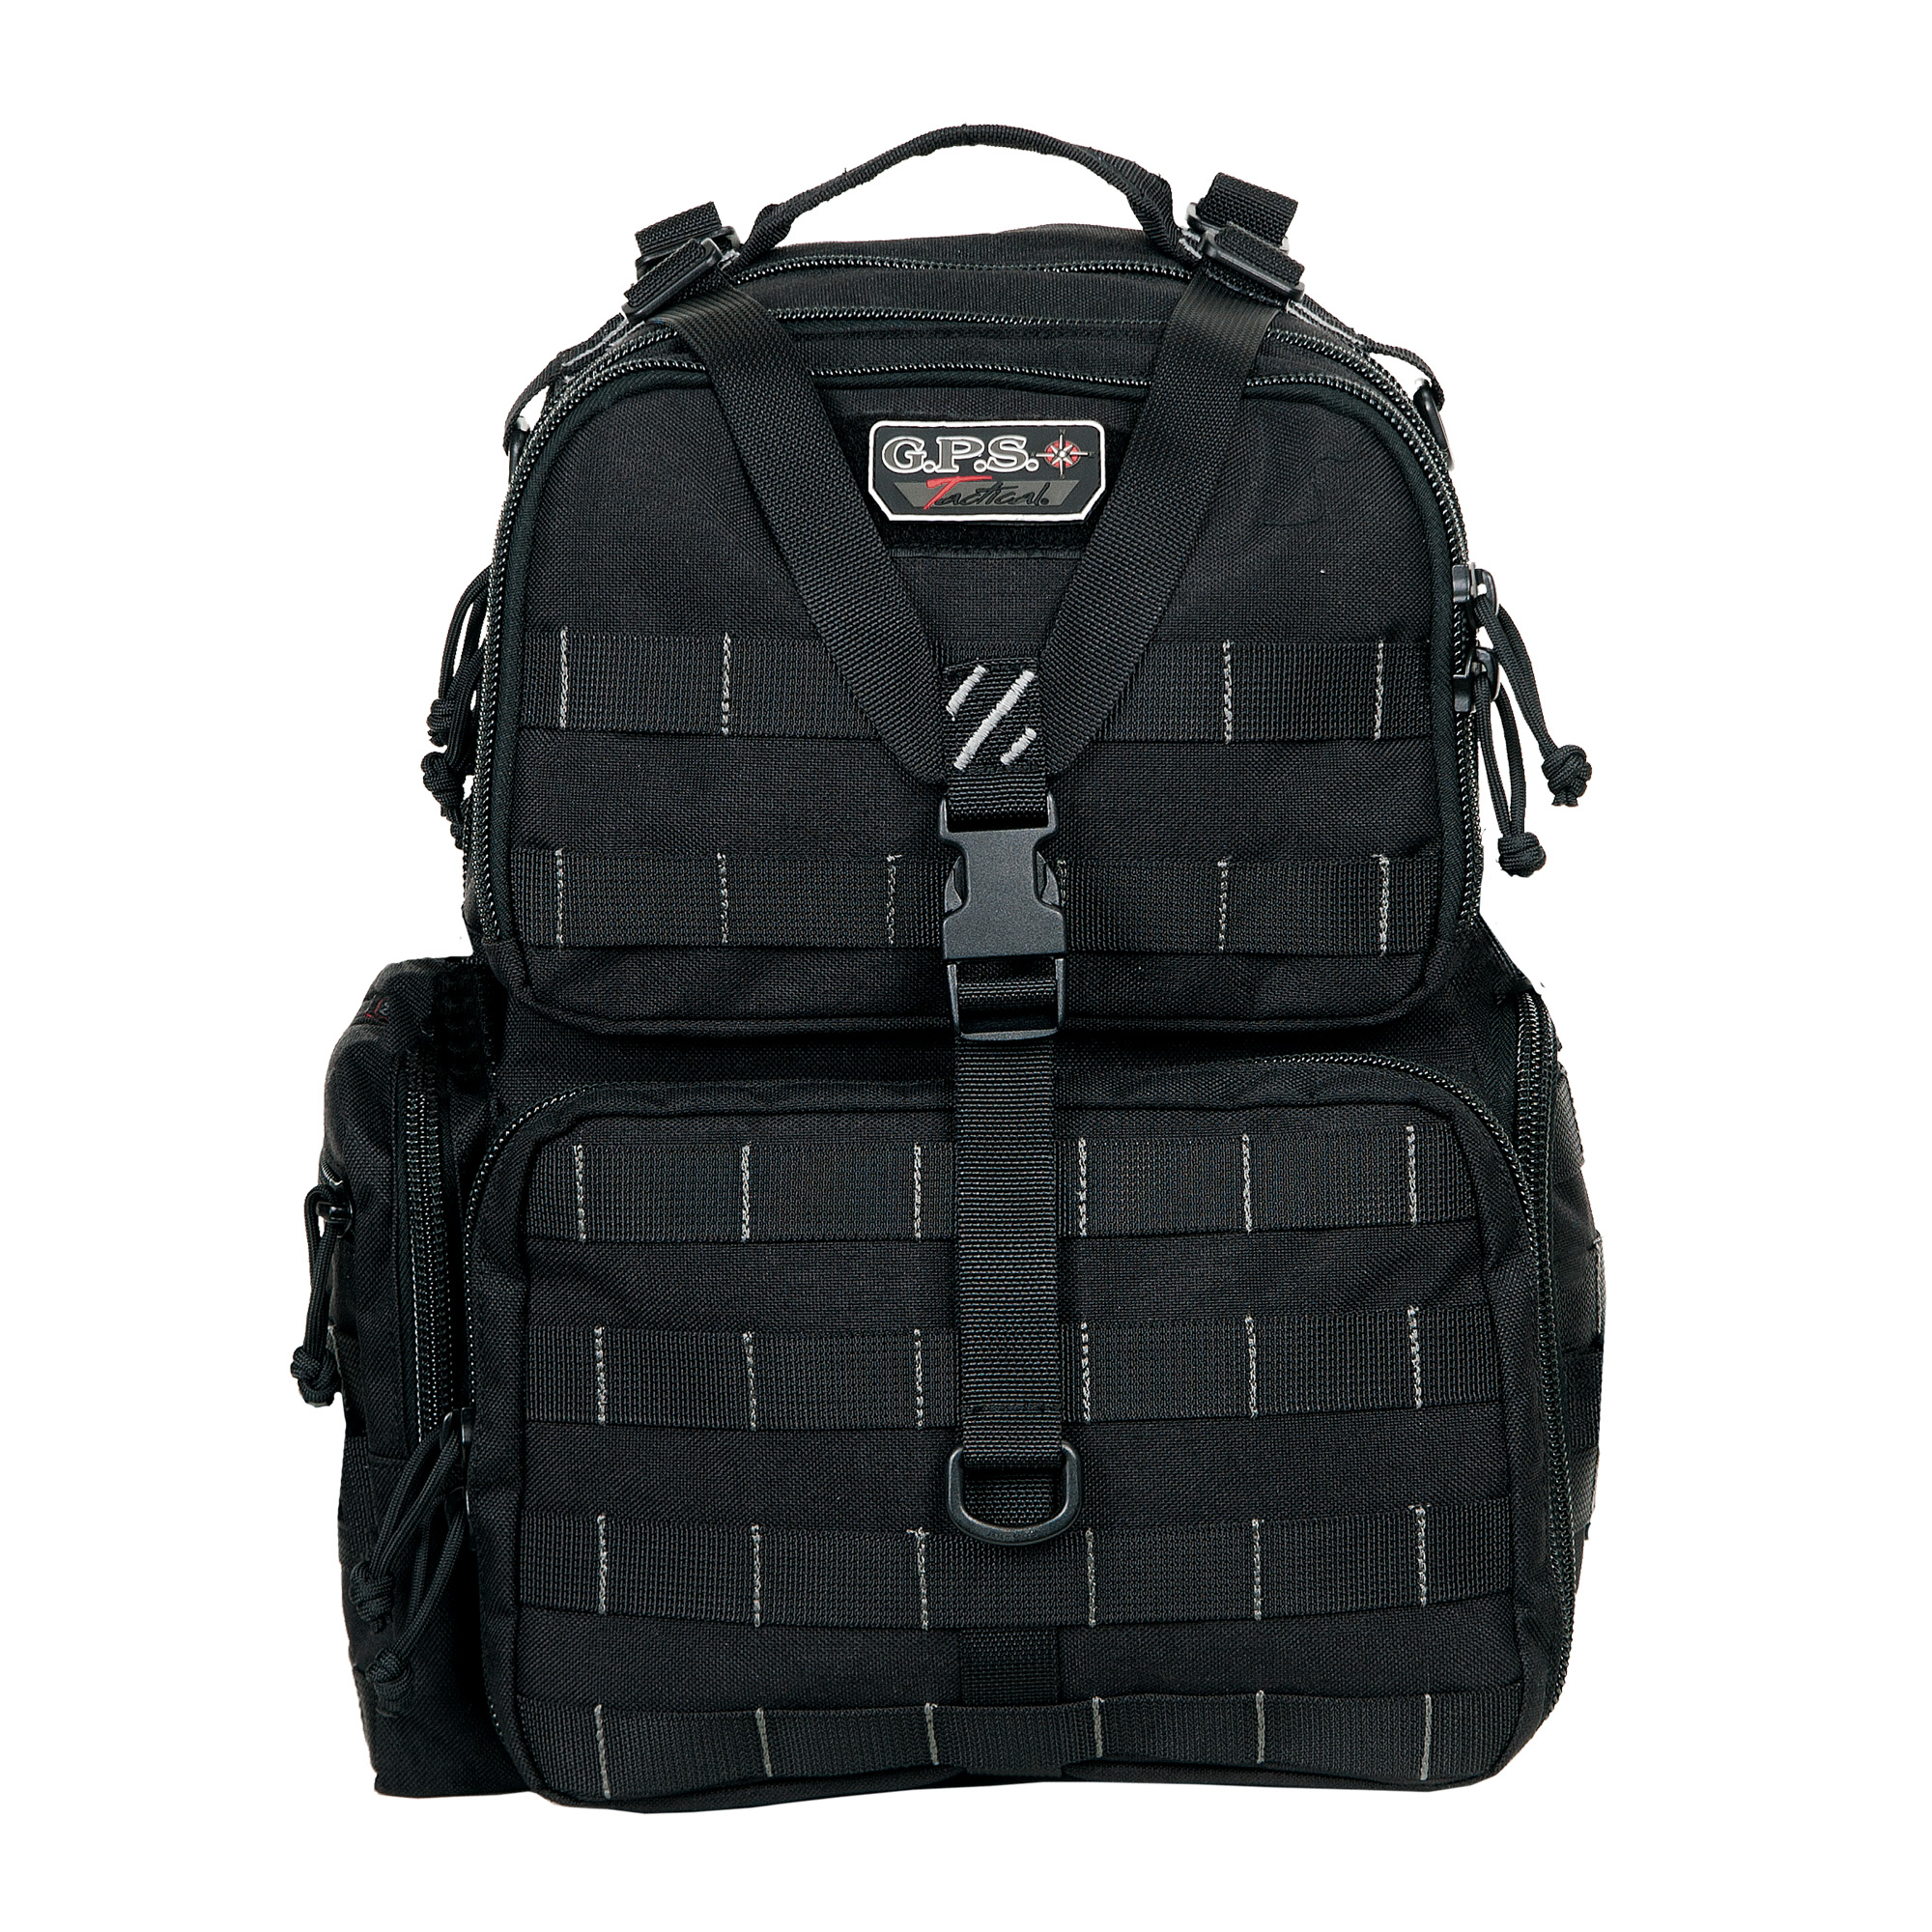 G-outdrs Gps Tac Range Backpack Blk